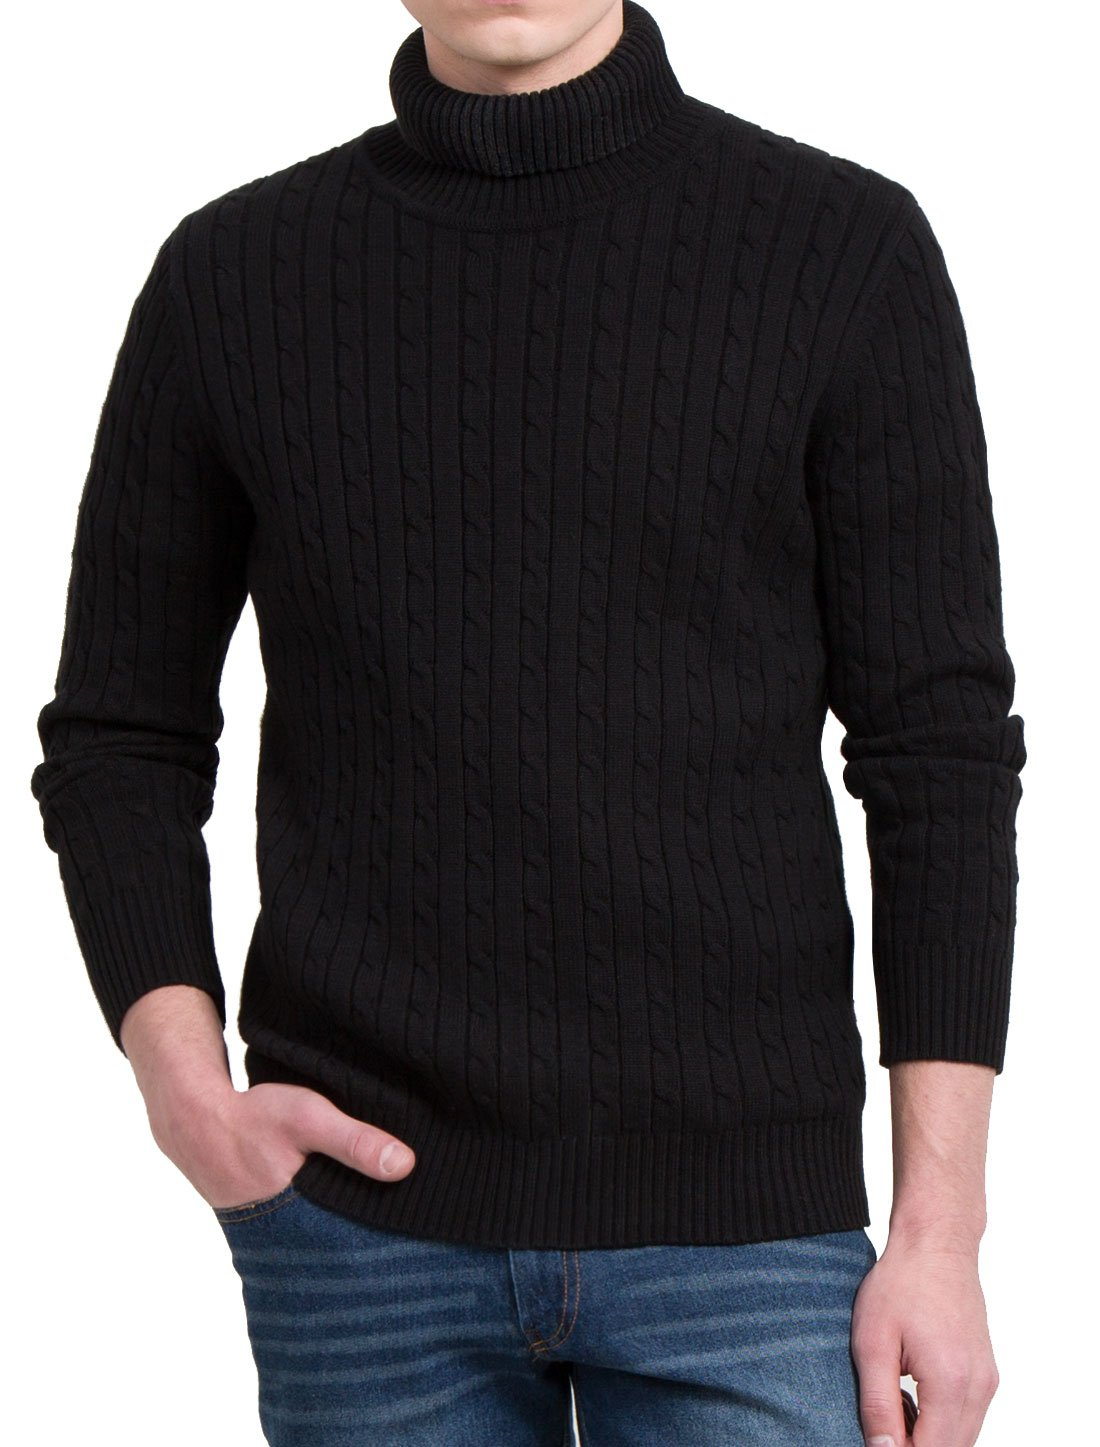 Allegra K Men Turtle-neck Long Sleeves Cable Knitted Sweater XLarge Black